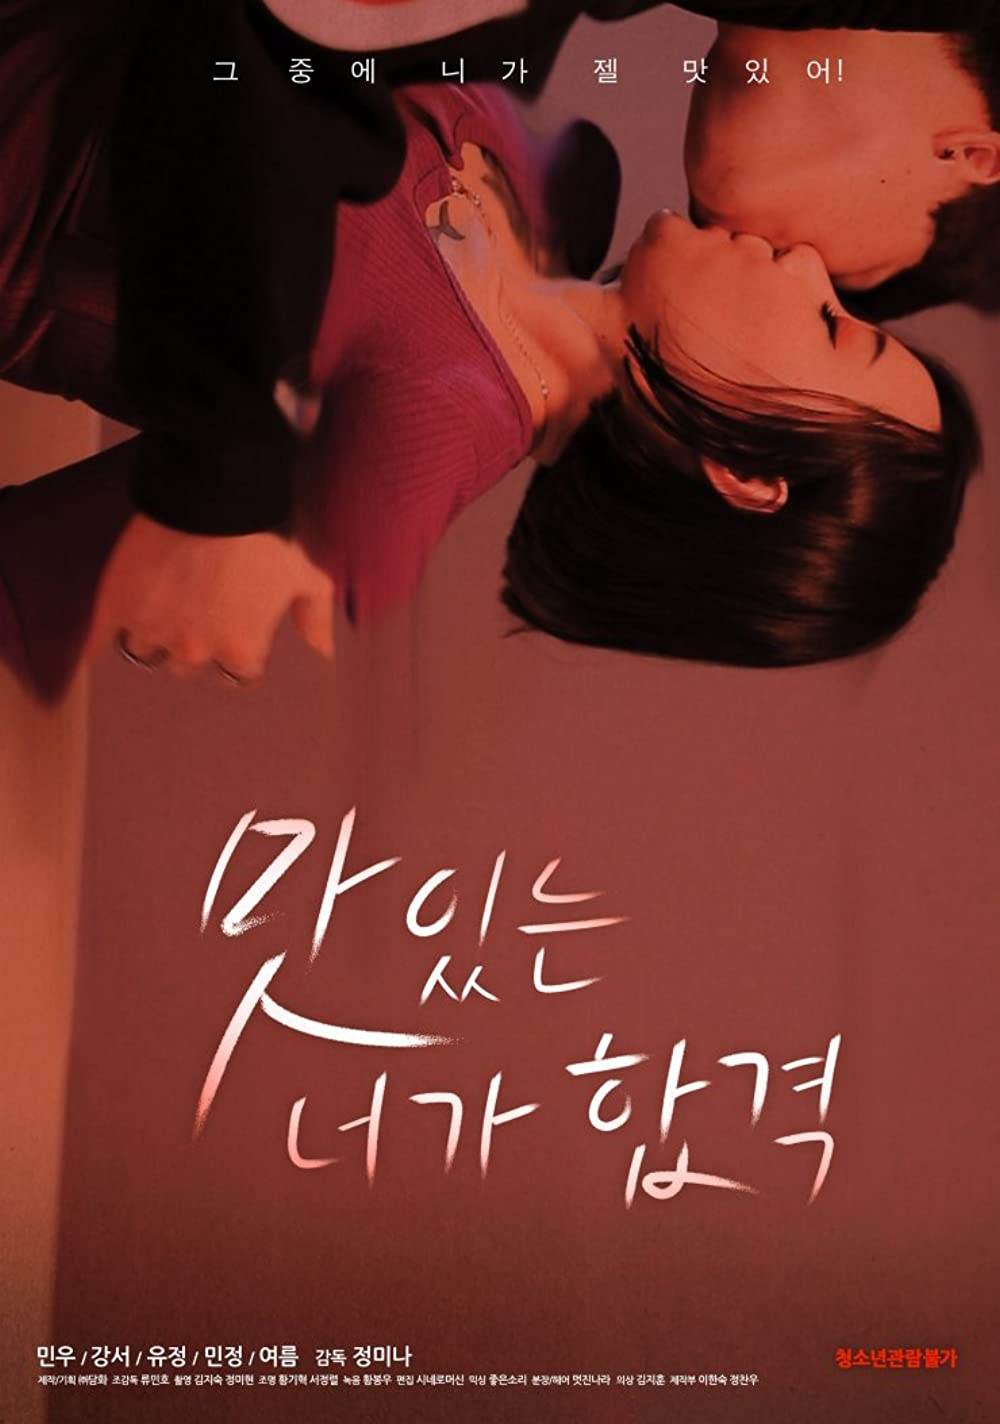 Delicious You Passed (2020) UNRATED 720p HEVC HDRip Korean Hot Movie x265 AAC (400MB) Full Movie Download